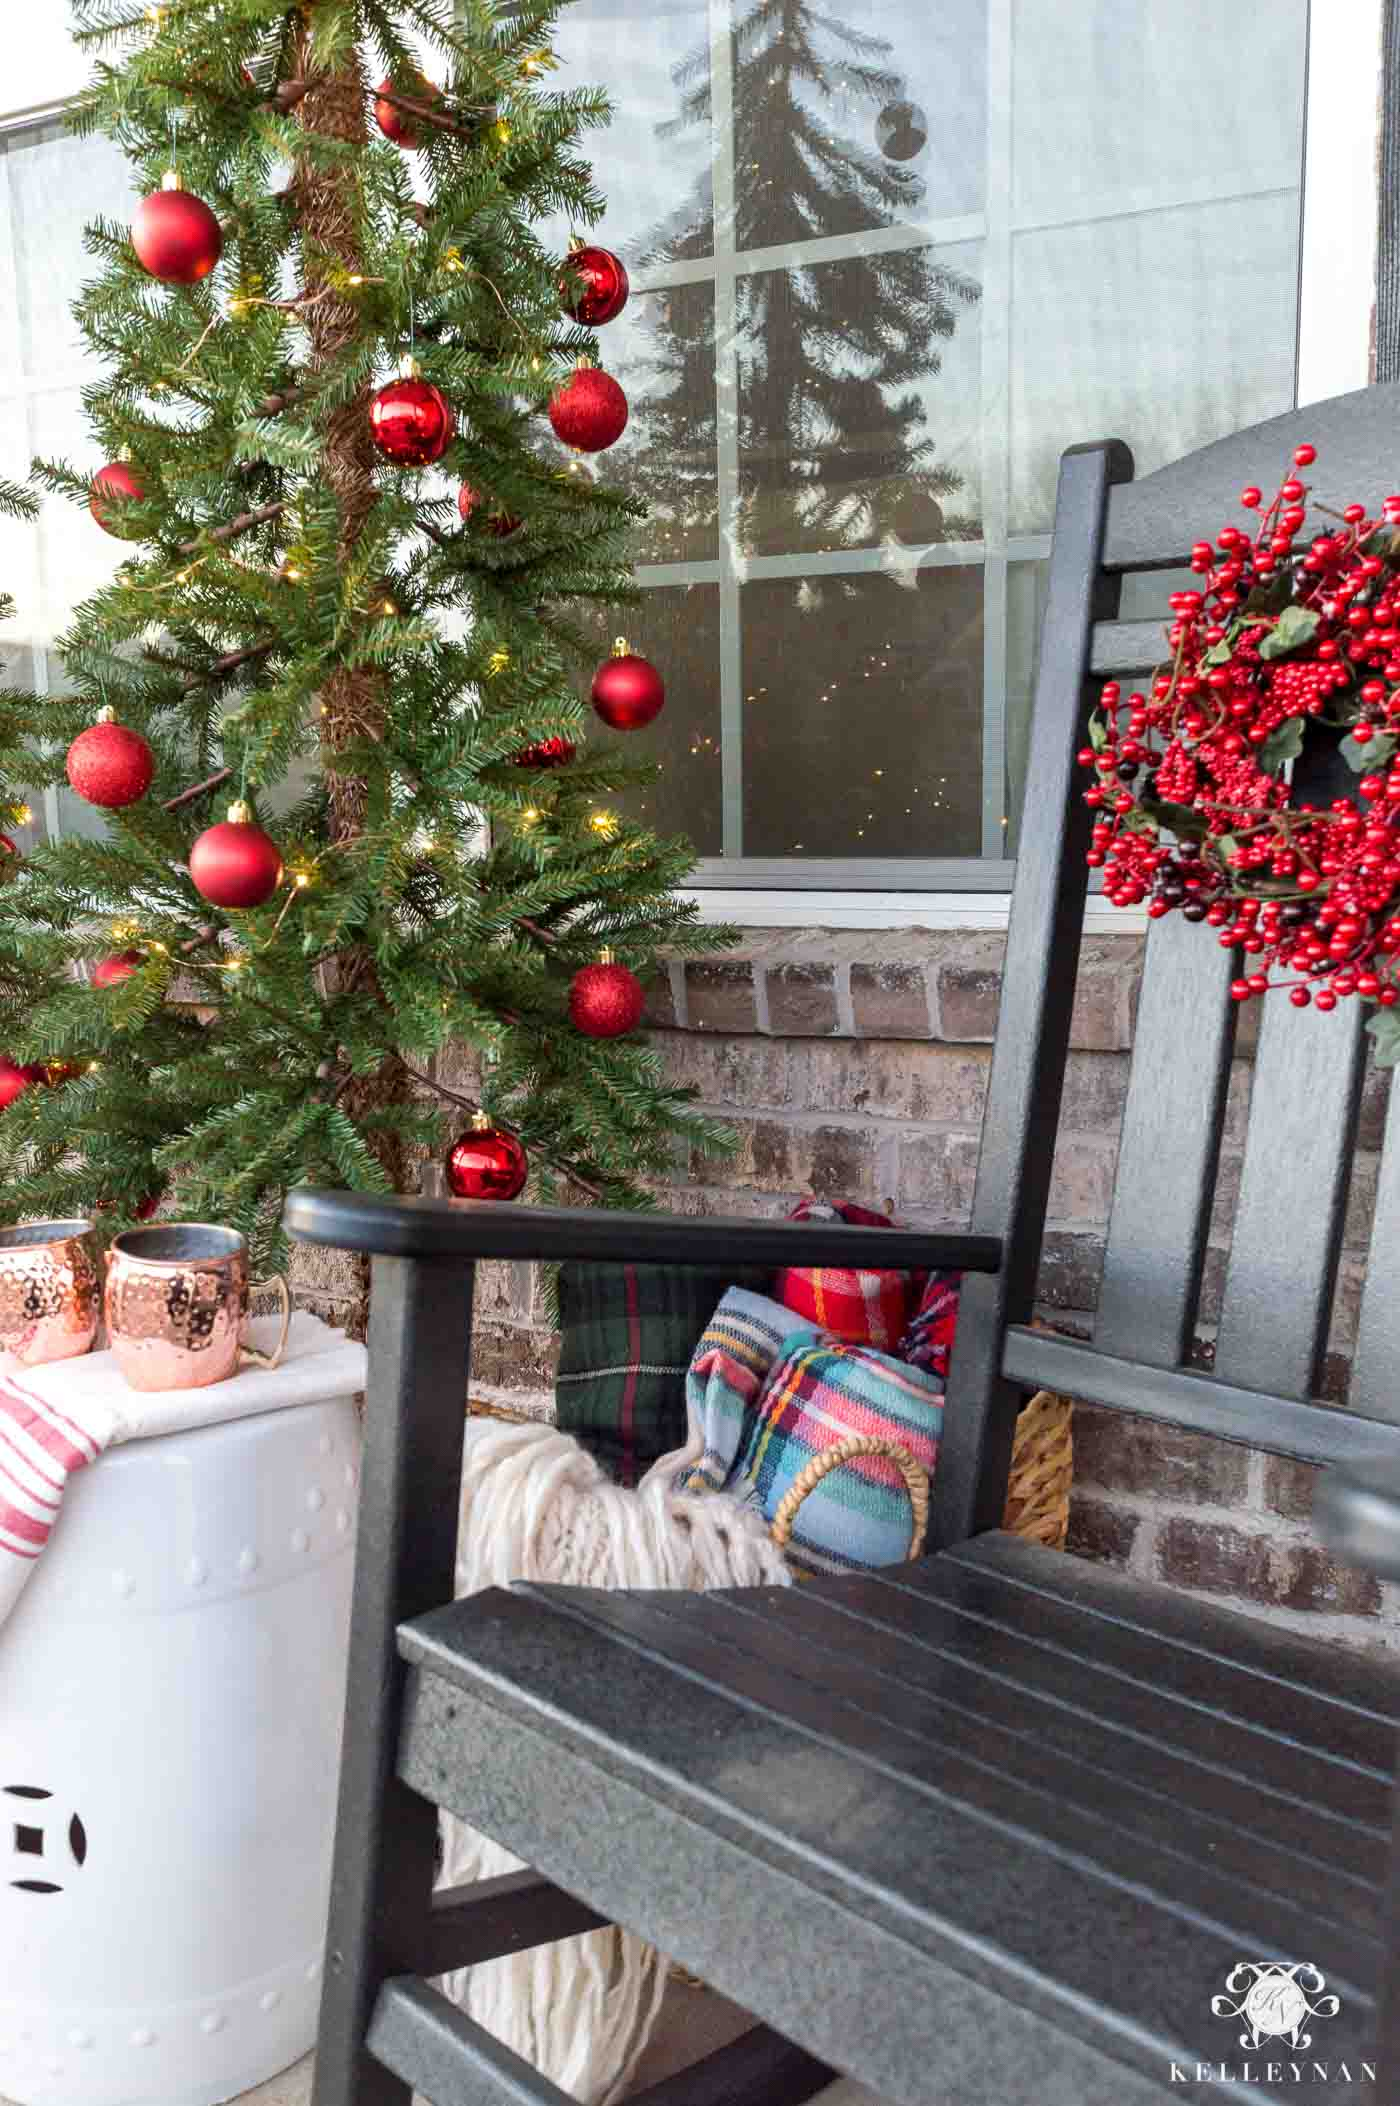 Rocking chair Christmas decorations with red berry wreaths